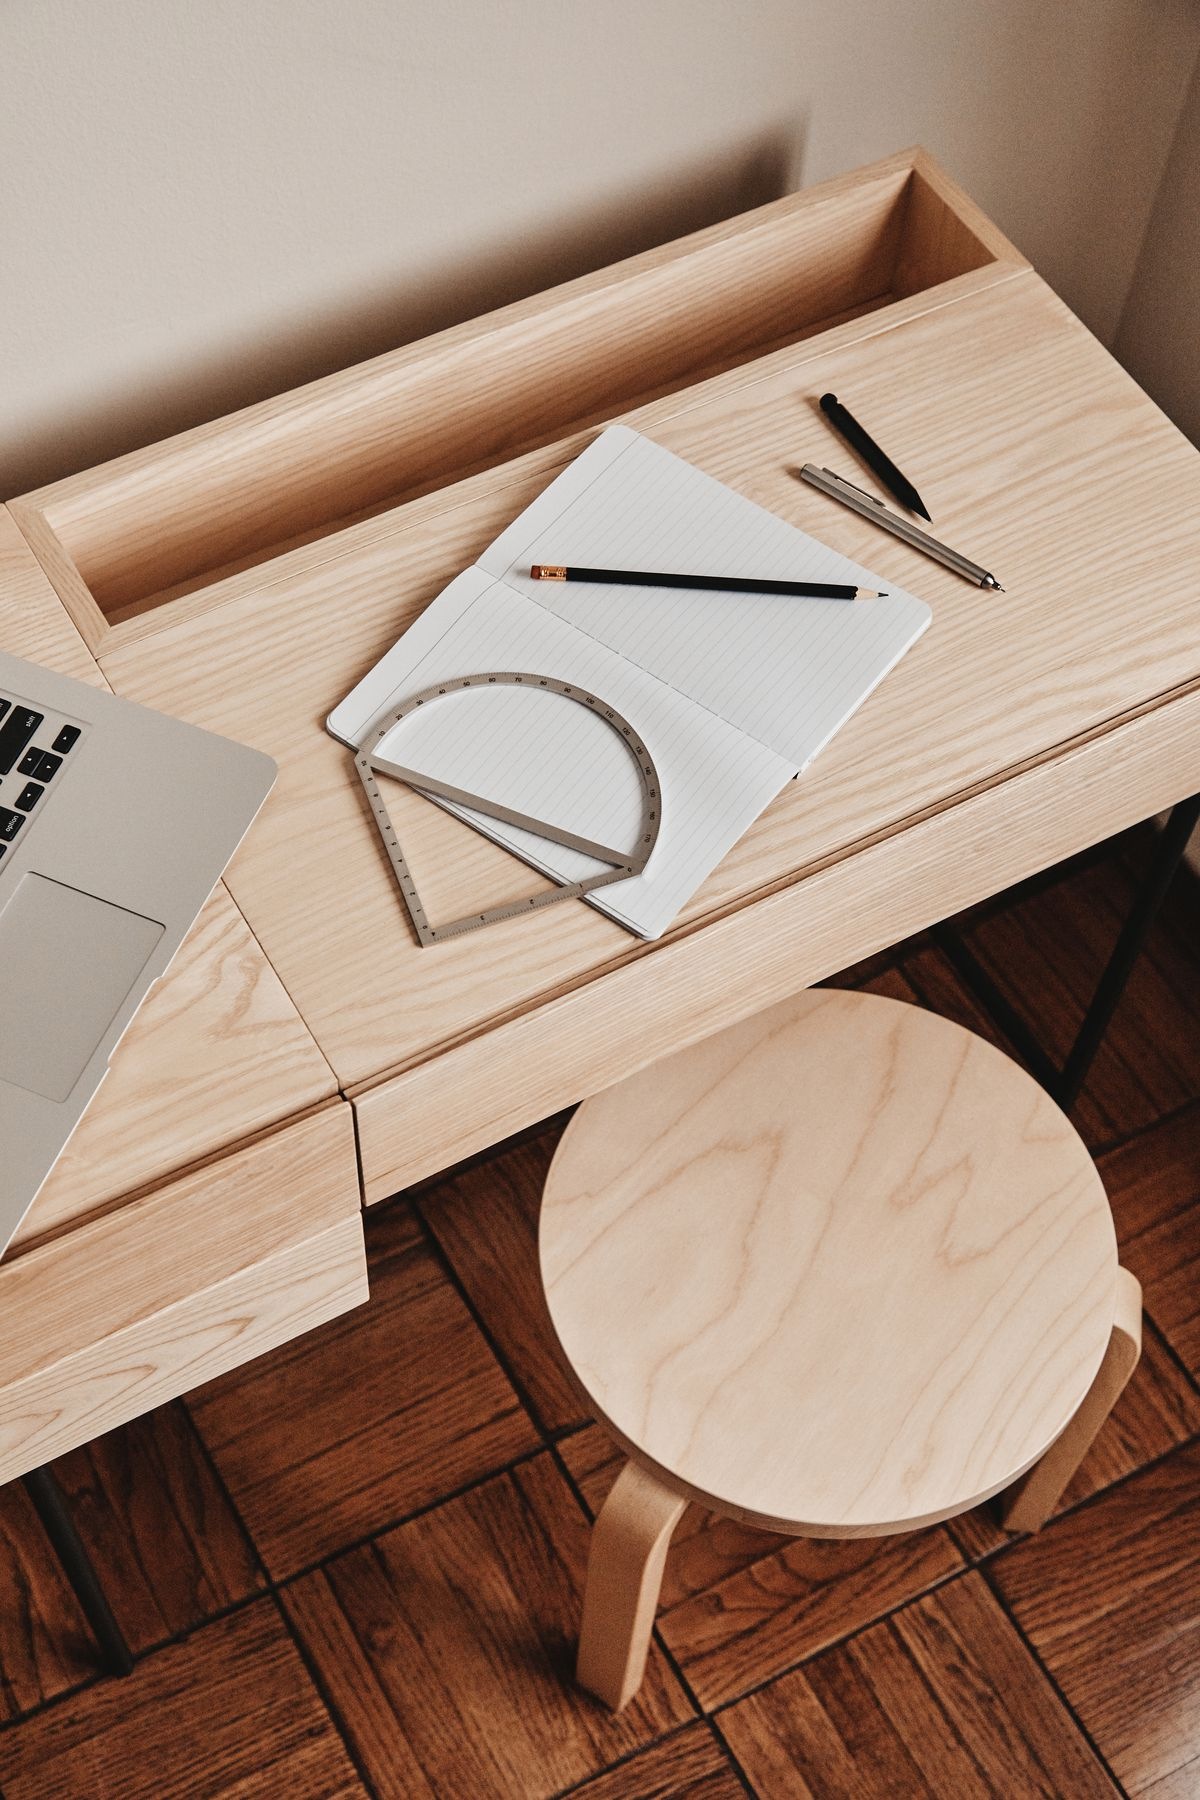 An overhead view of a pale wood desk with a notebook and pencils on top.